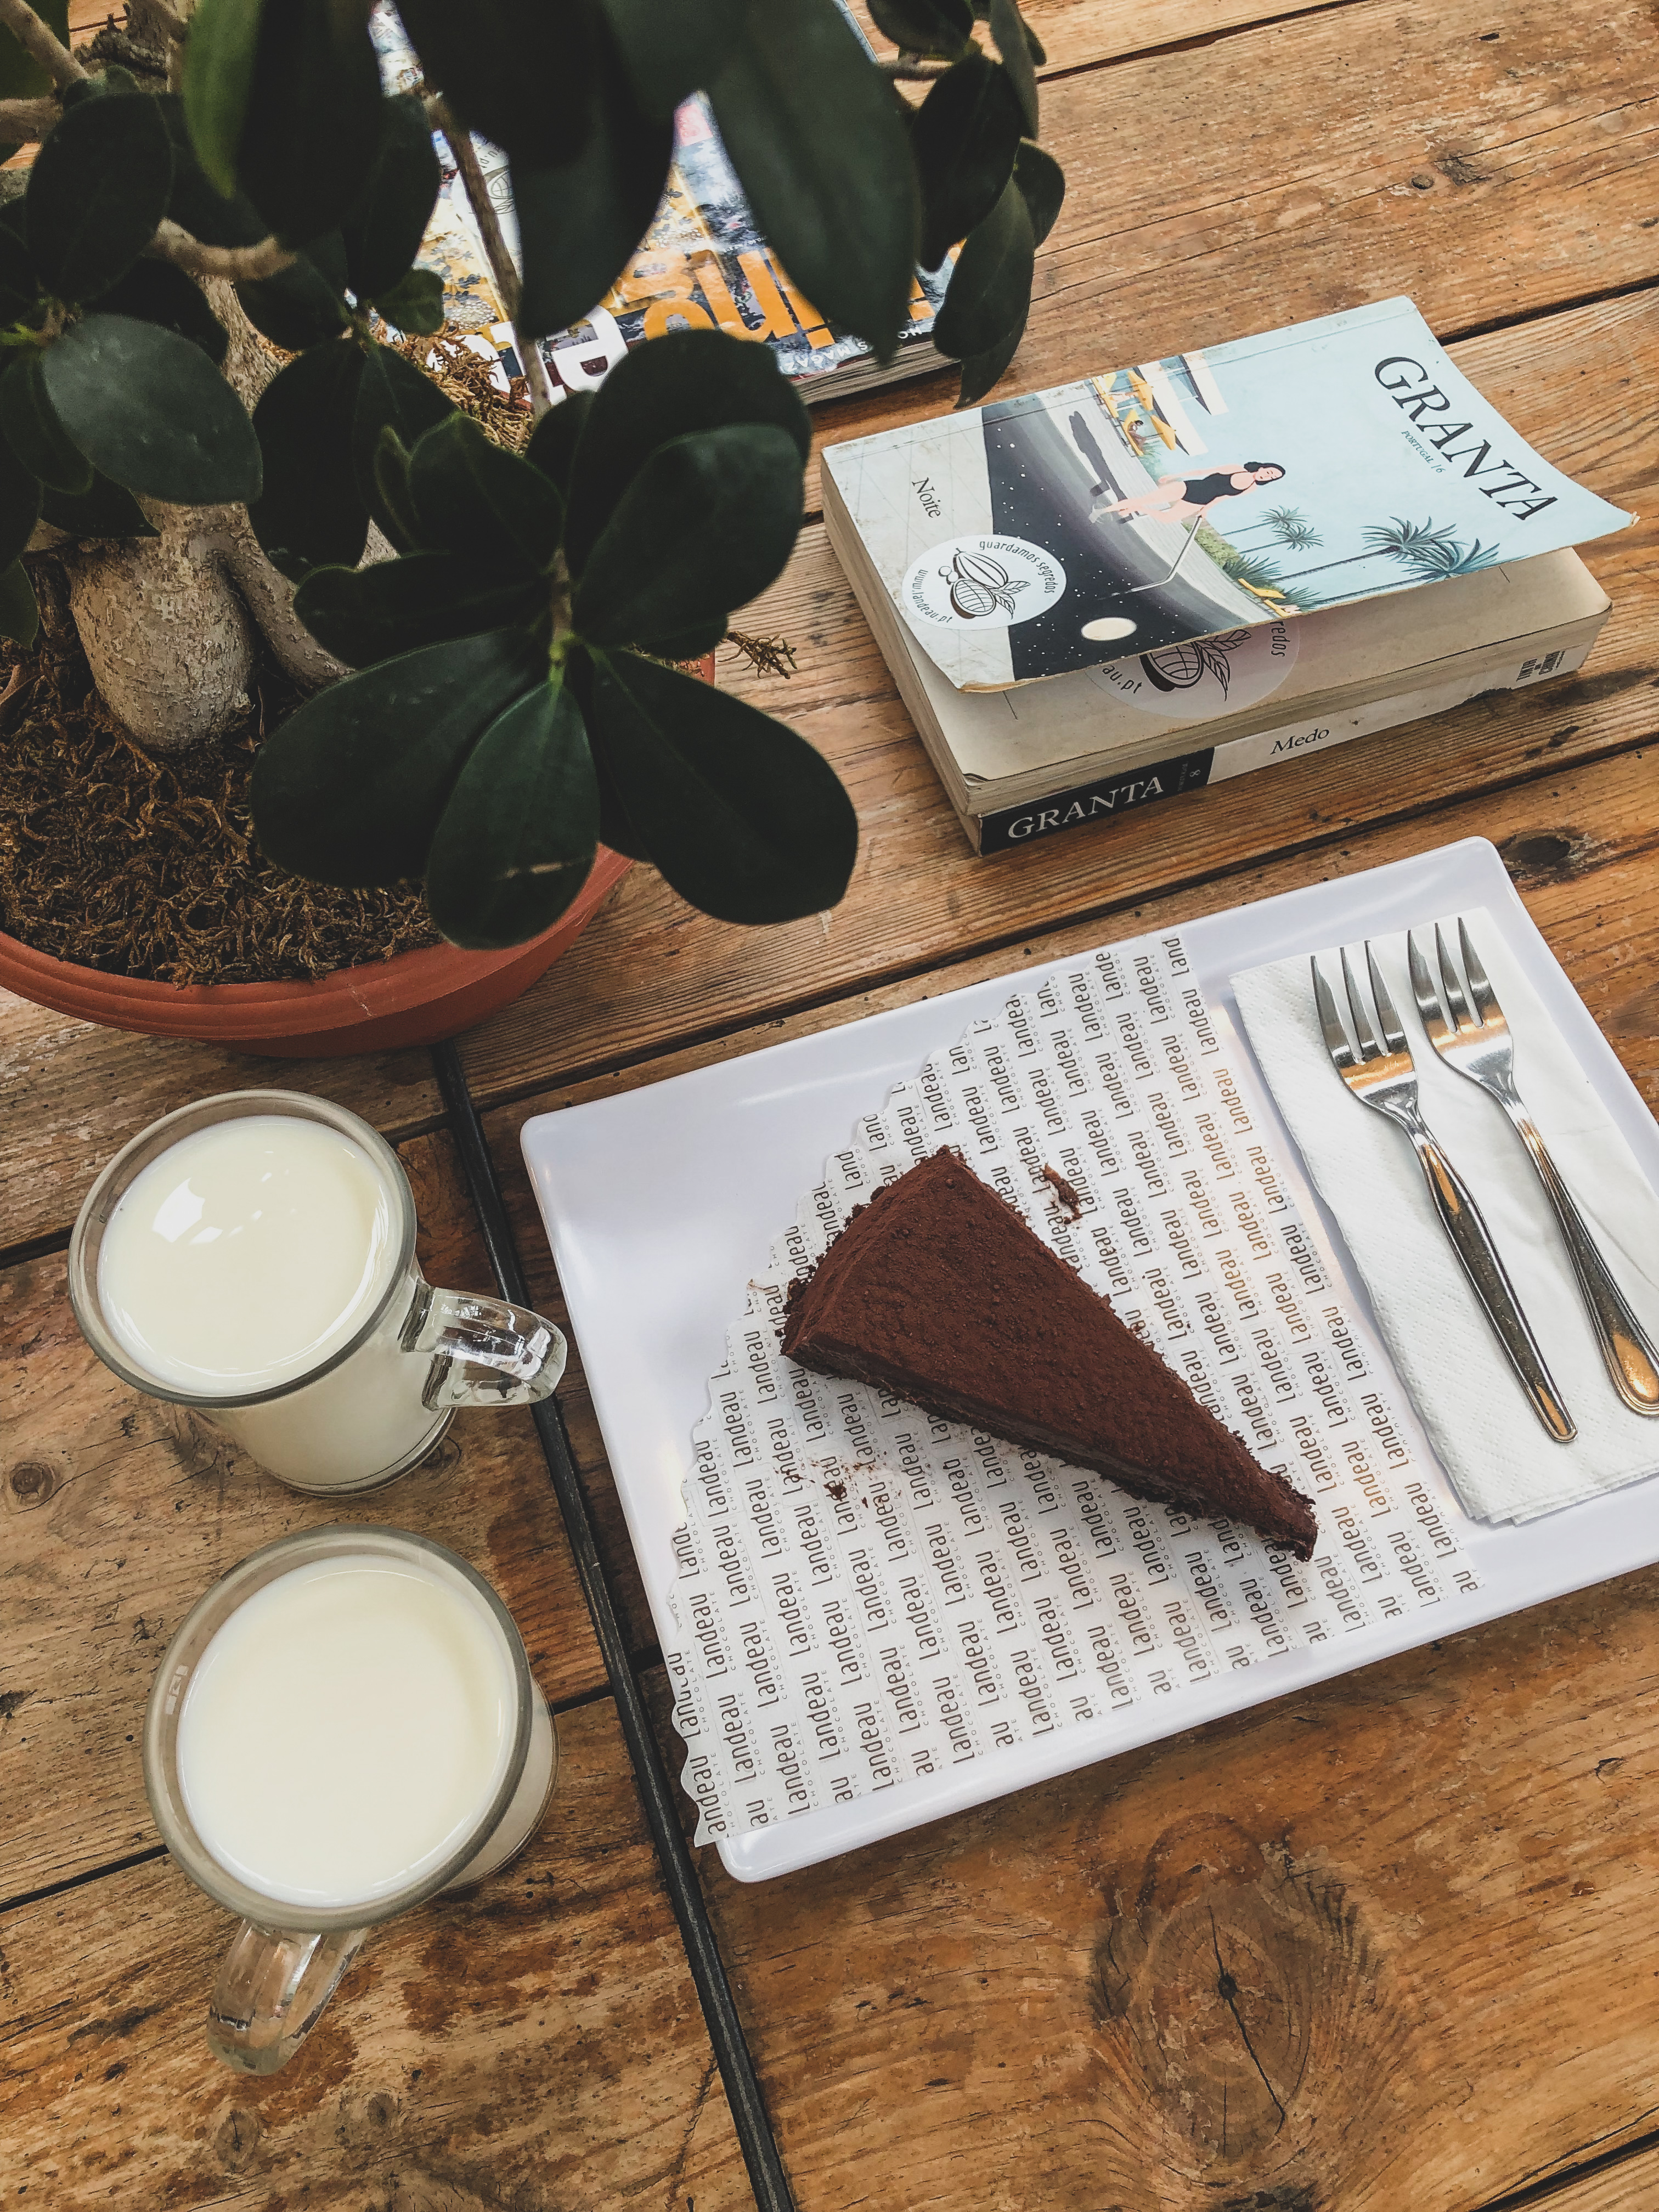 chocolate cake and a glass of milk